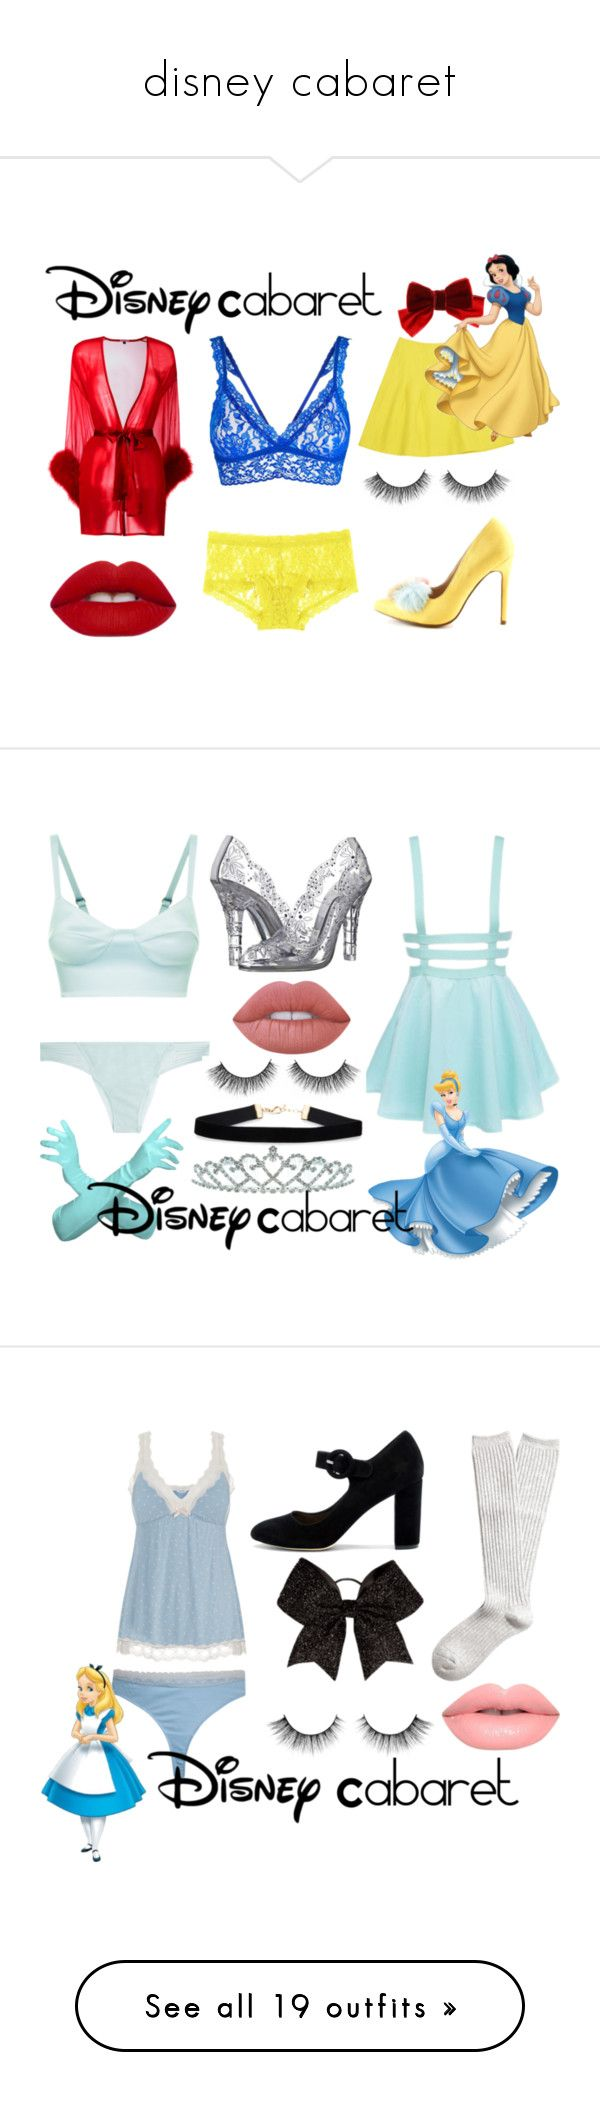 """disney cabaret"" by peppermint-x ❤ liked on Polyvore featuring Hanky Panky, Marni, Gilda & Pearl, Clips, Cape Robbin, Disney, Lime Crime, La Perla, Dolce&Gabbana and Kate Marie"